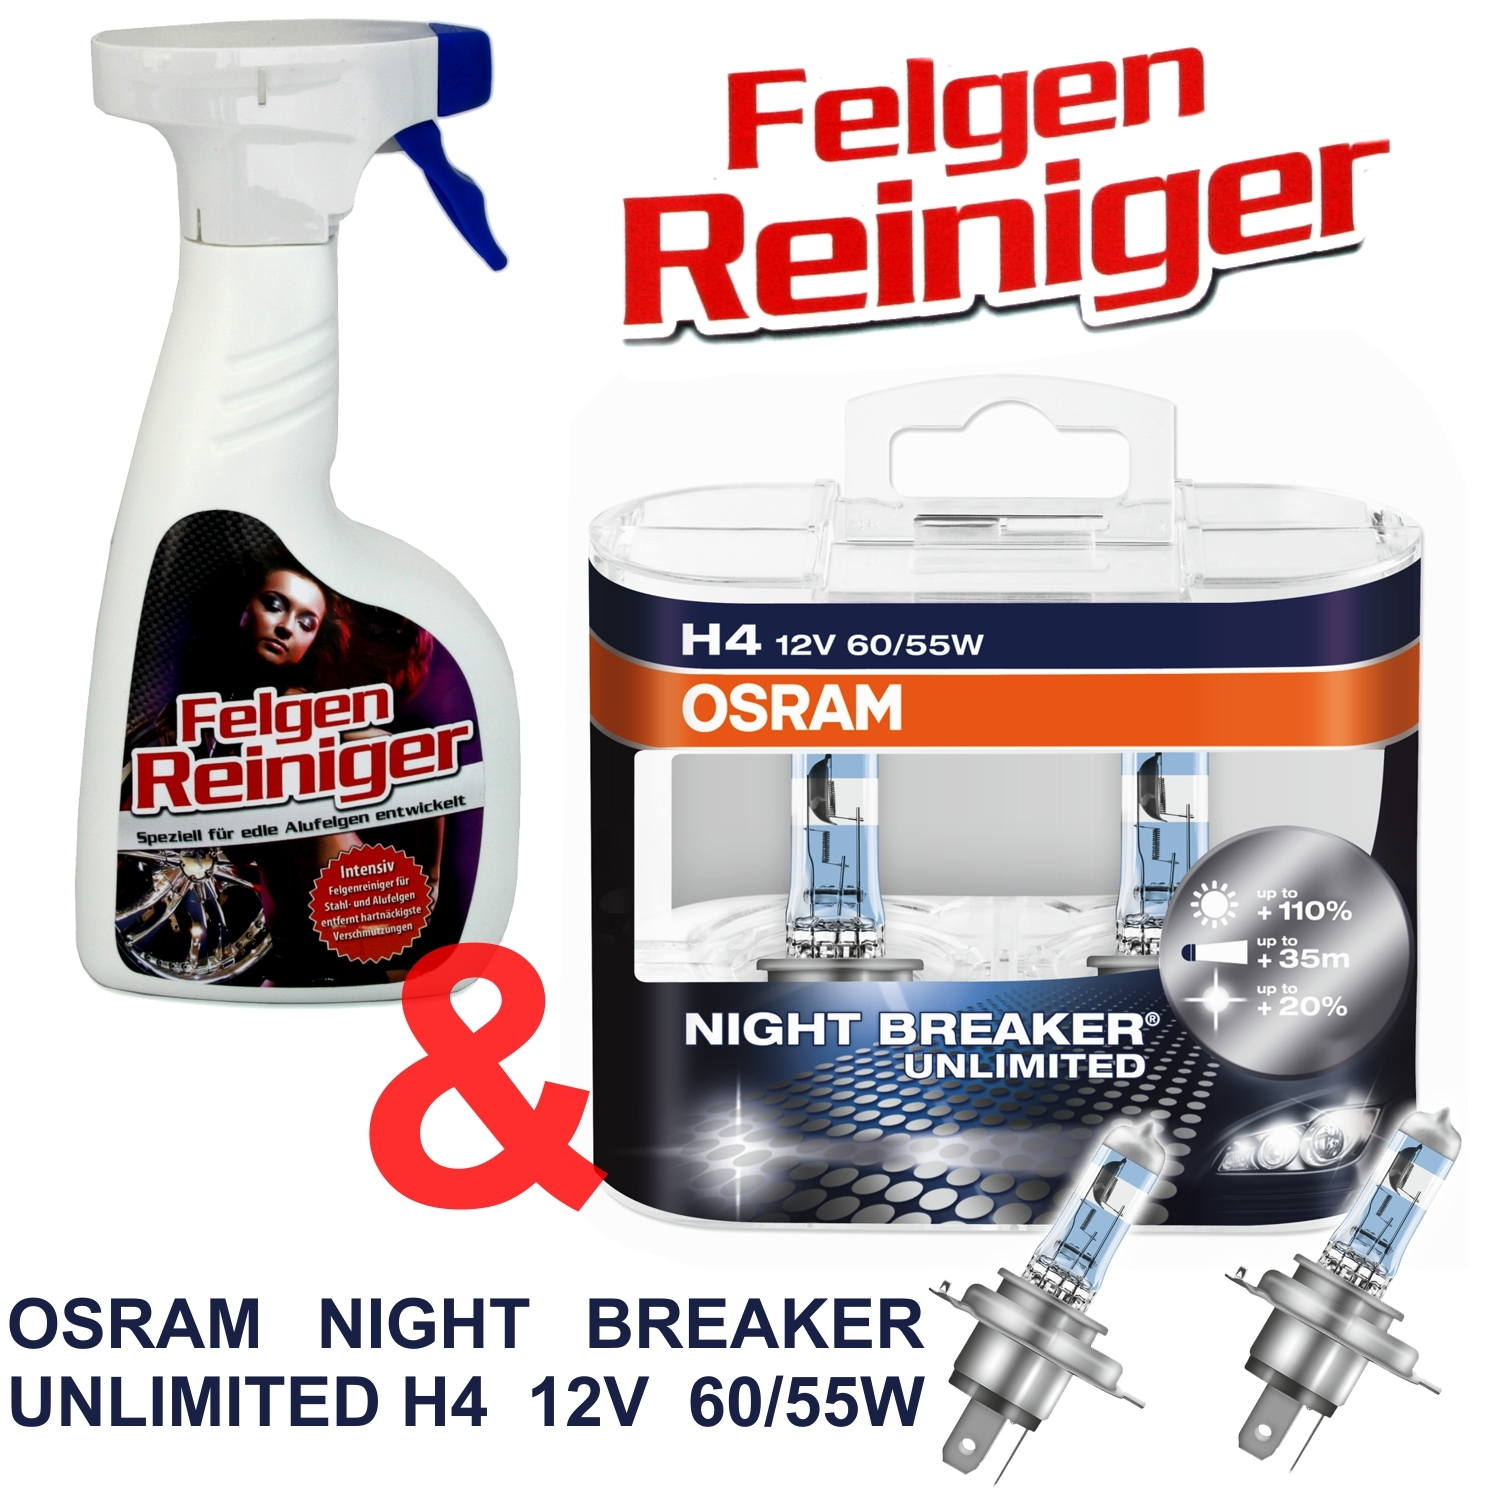 osram night breaker unlimited h4 felgenreiniger ad tuning. Black Bedroom Furniture Sets. Home Design Ideas